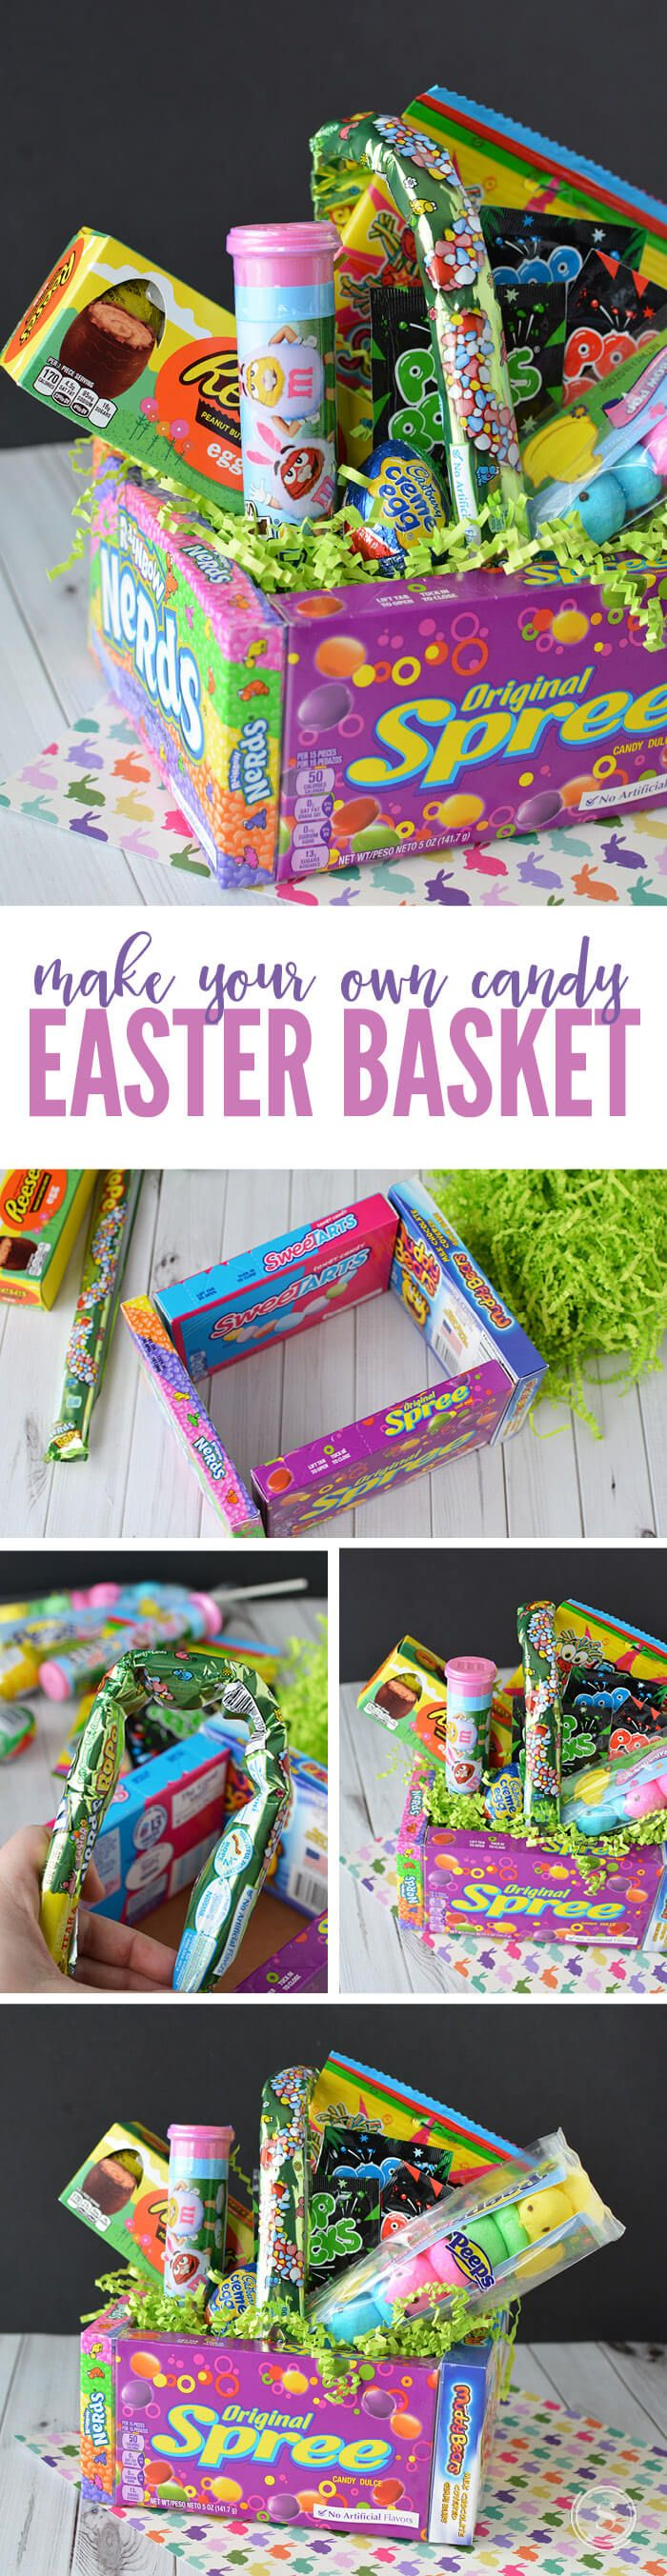 Diy candy easter basket an easy and creative way to make a fun easy easter idea for teachers friends or kids create and fill your diy easter basket with sweets and treats negle Choice Image